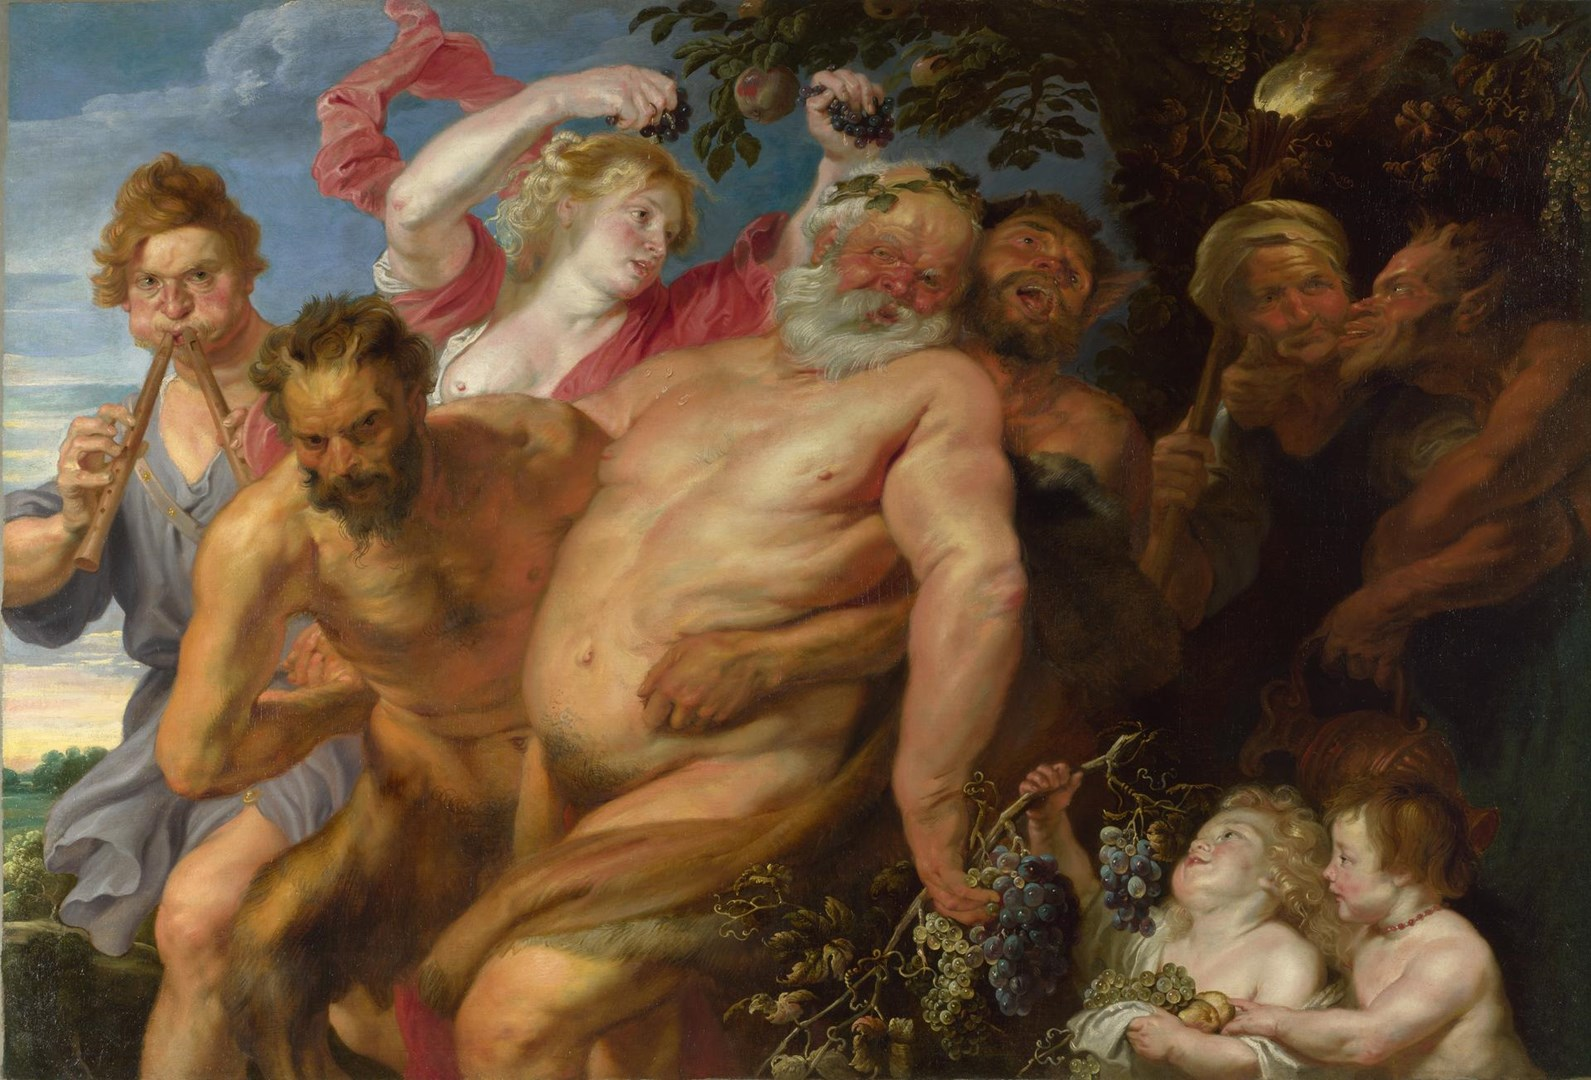 Drunken Silenus supported by Satyrs by Possibly by Anthony van Dyck